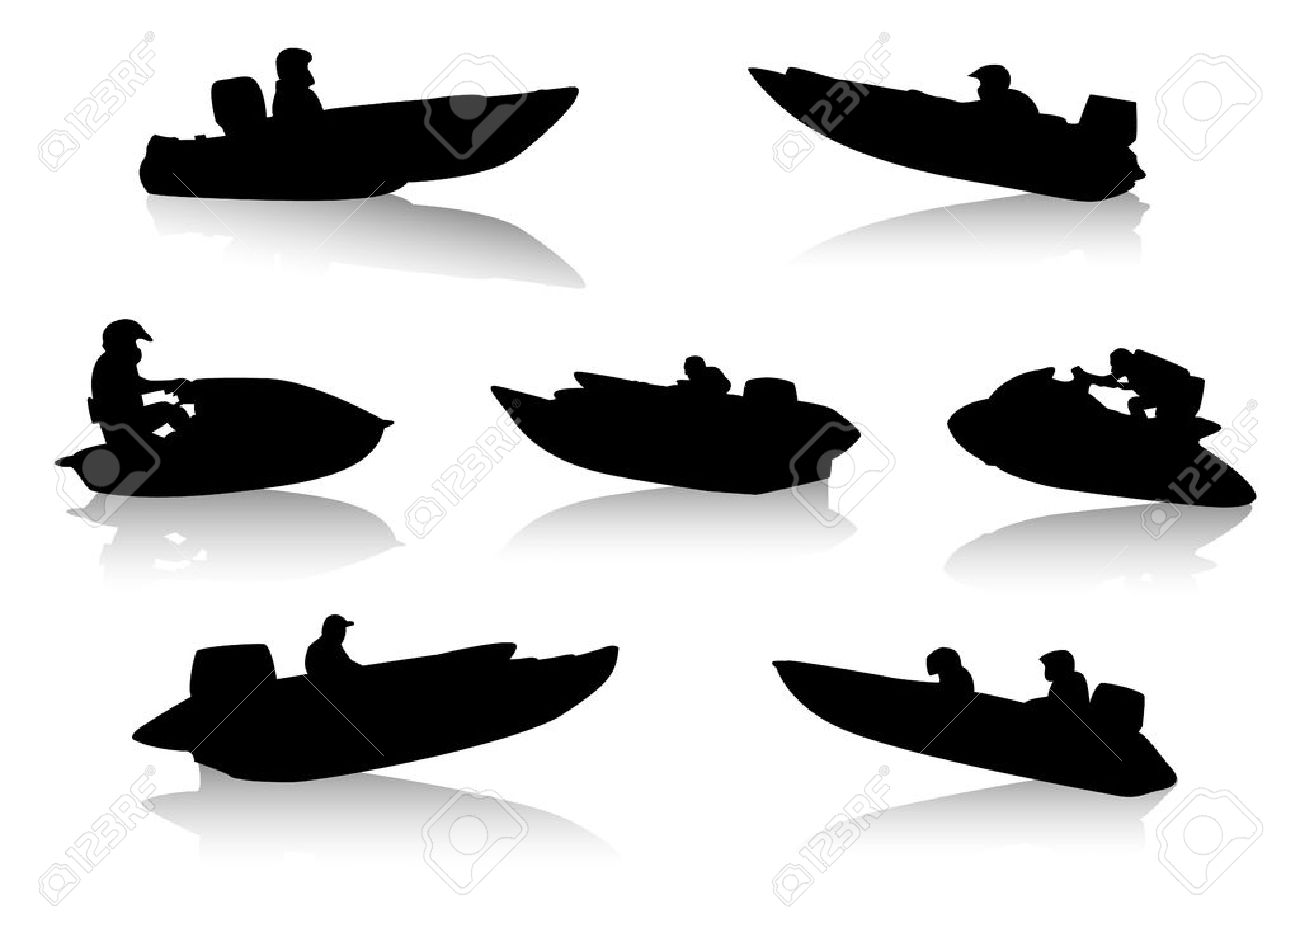 Silhouettes Of People On Motor Boats Royalty Free Cliparts.